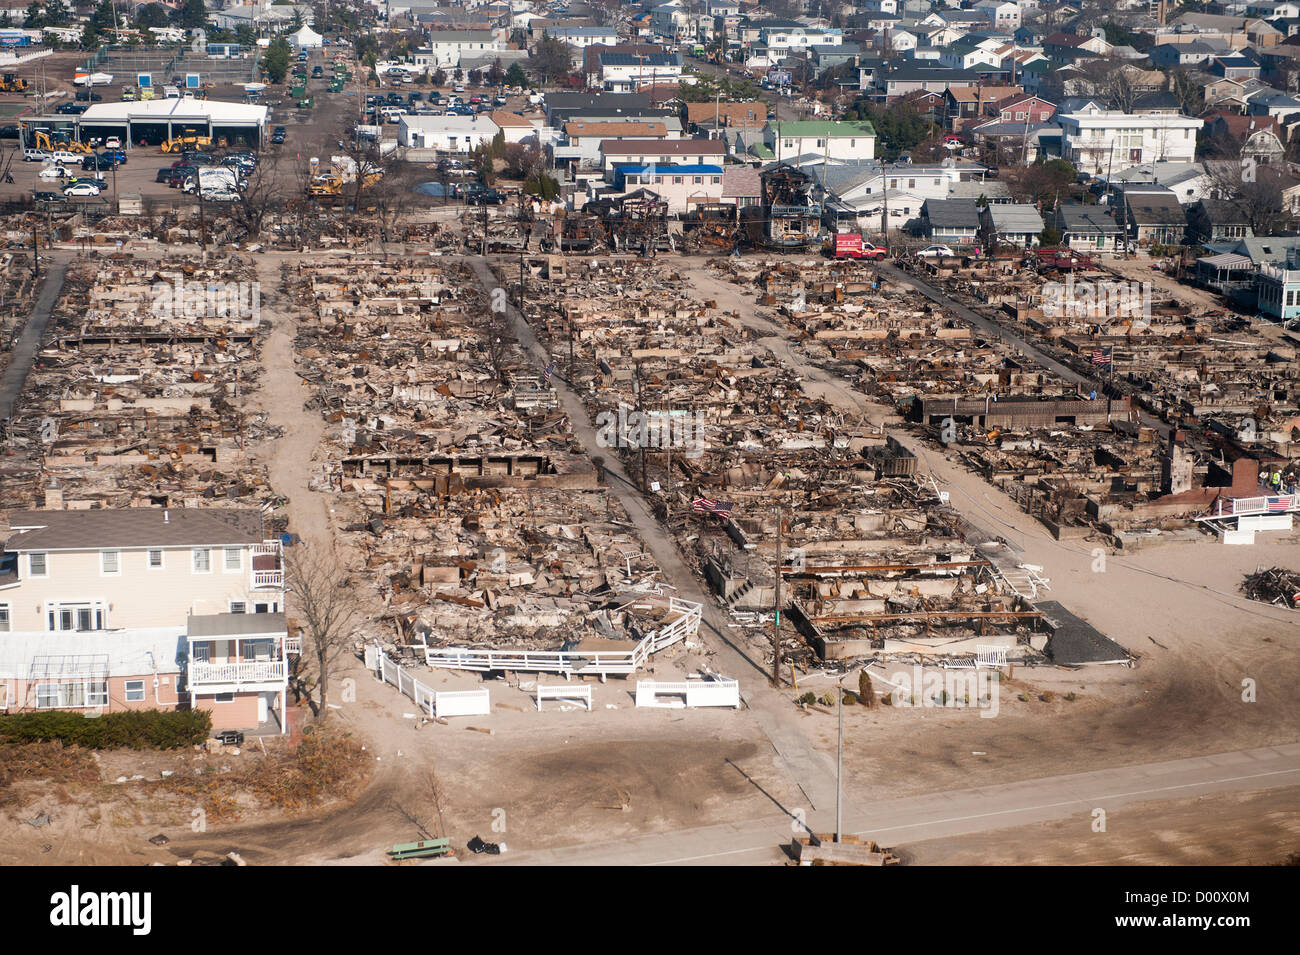 Aerial view of the of widespread devastation after Hurricane Sandy November 12, 2012 in Breezy Point, NY. - Stock Image